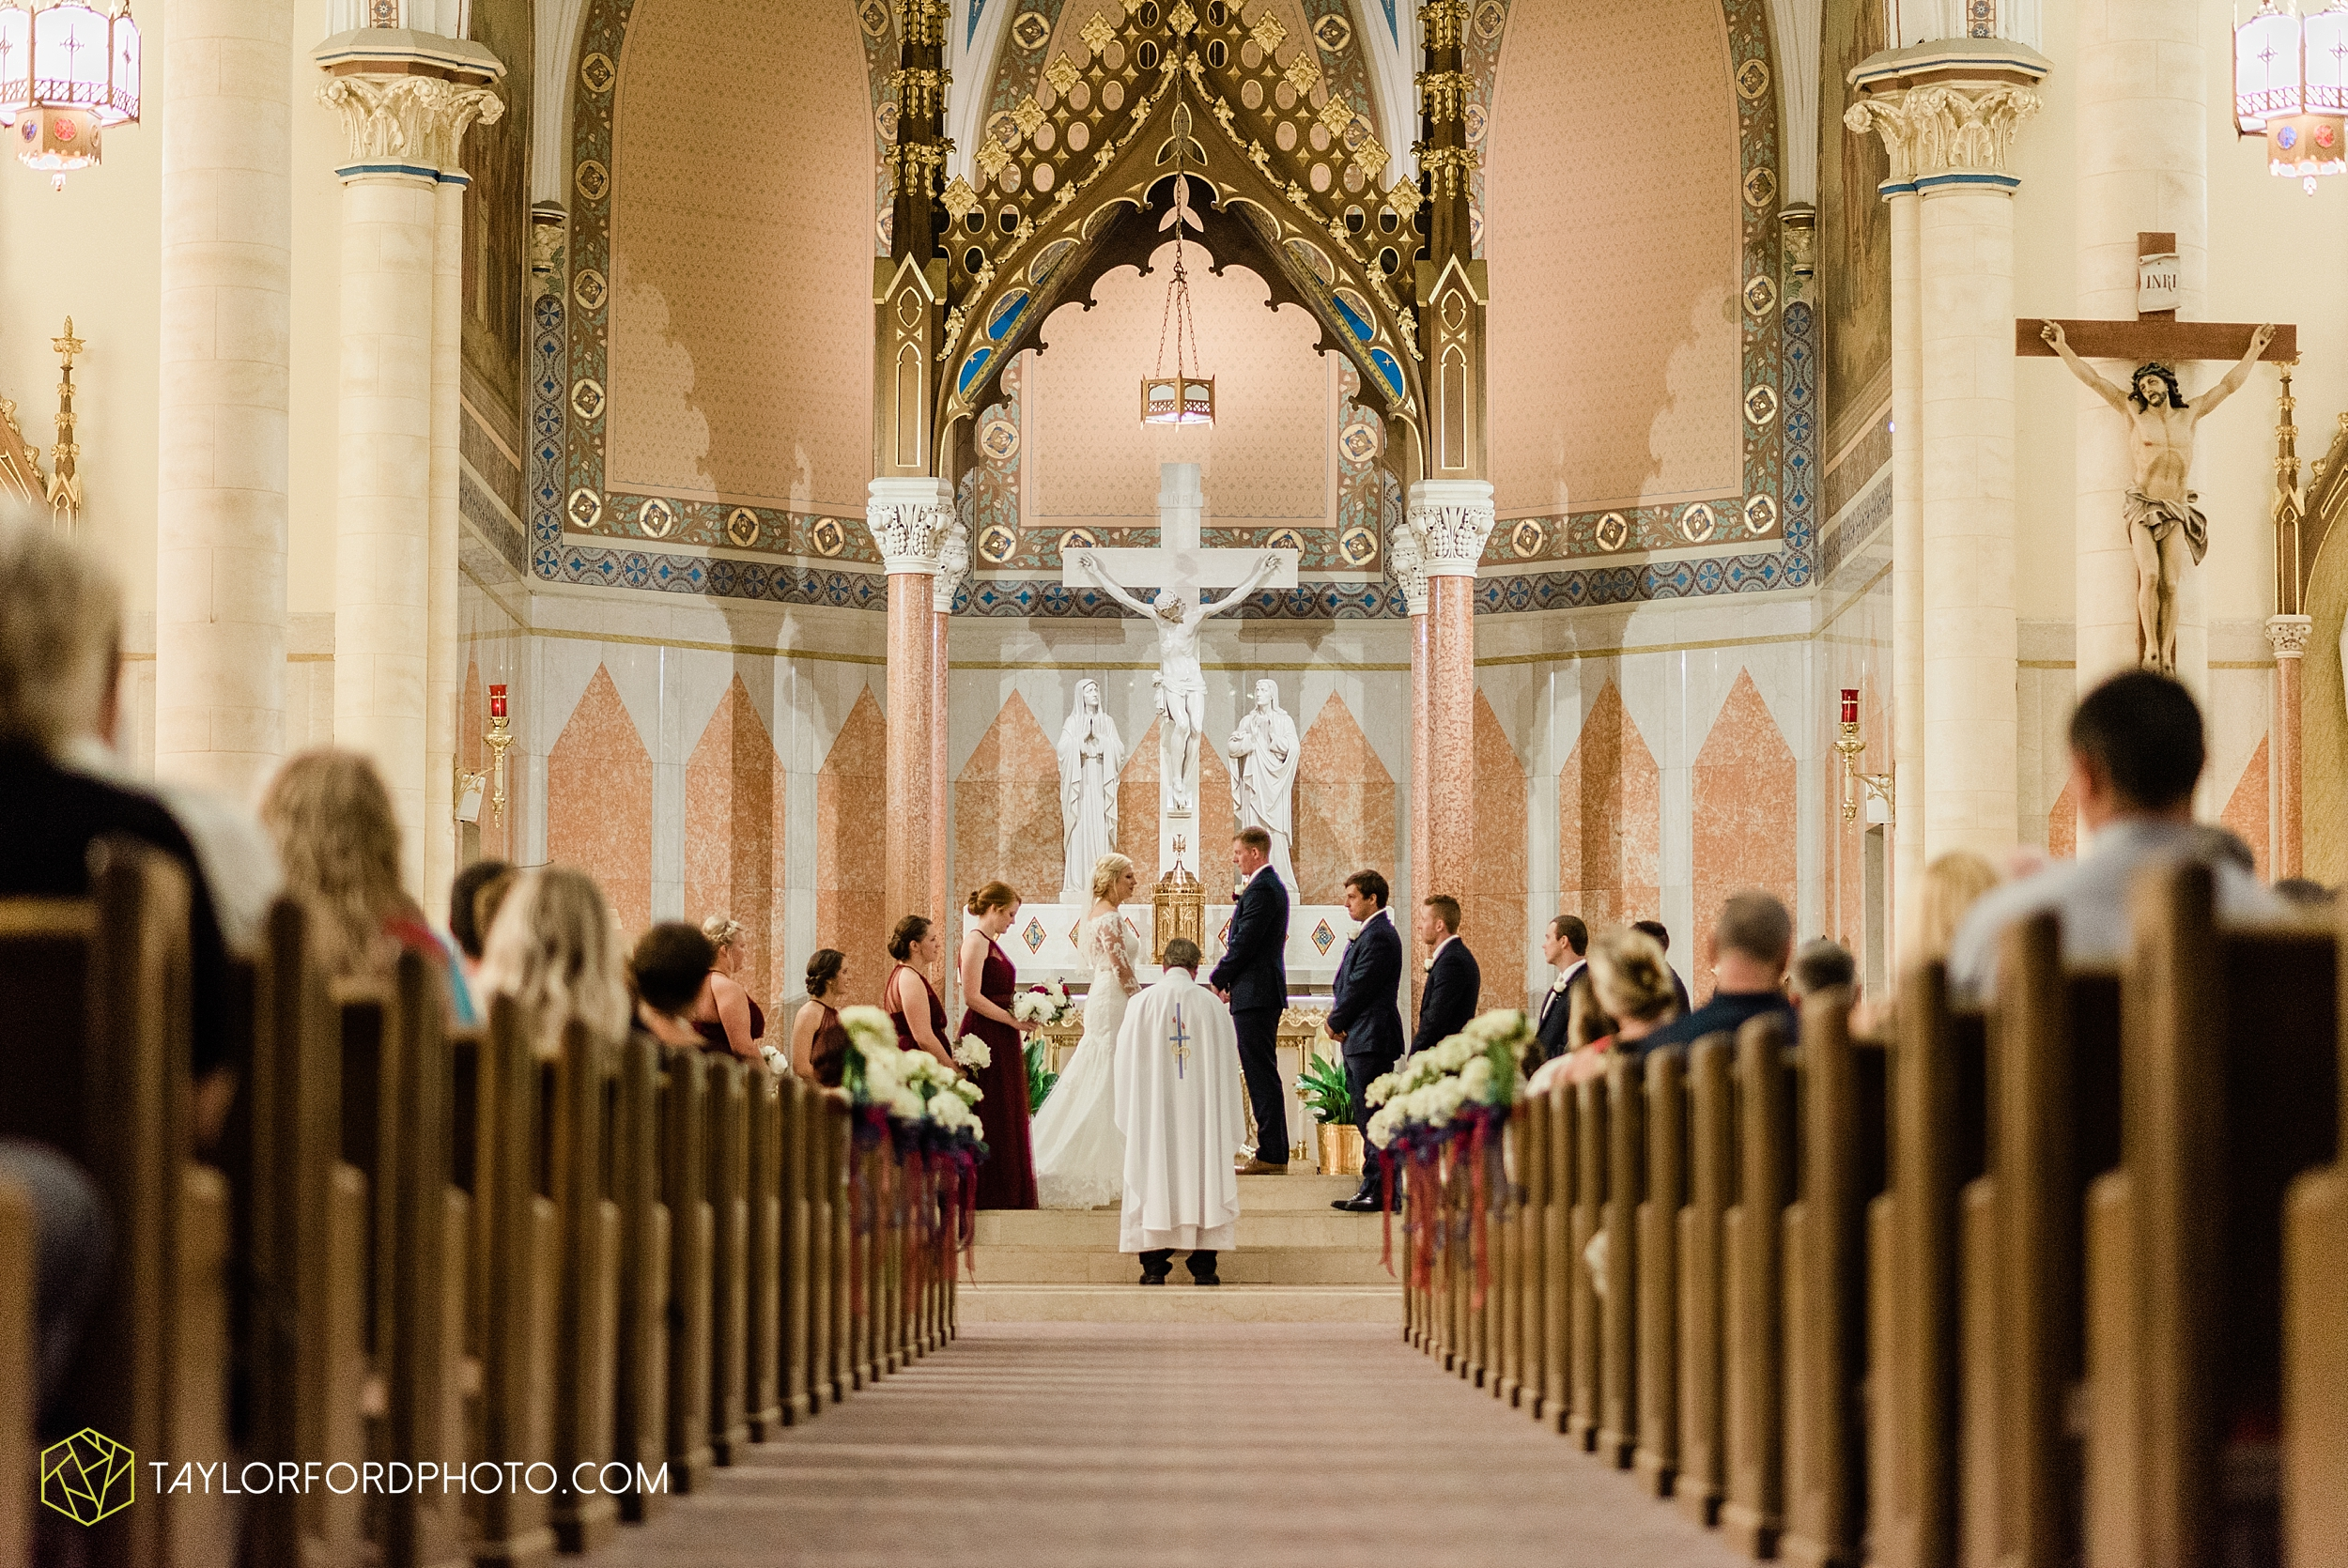 gayle-rayman-mike-steele-ottoville-ohio-wedding-immaculate-conception-parish-center-wedding-sycamore-lake-winery-wannamachers-photographer-taylor-ford-photography_0396.jpg